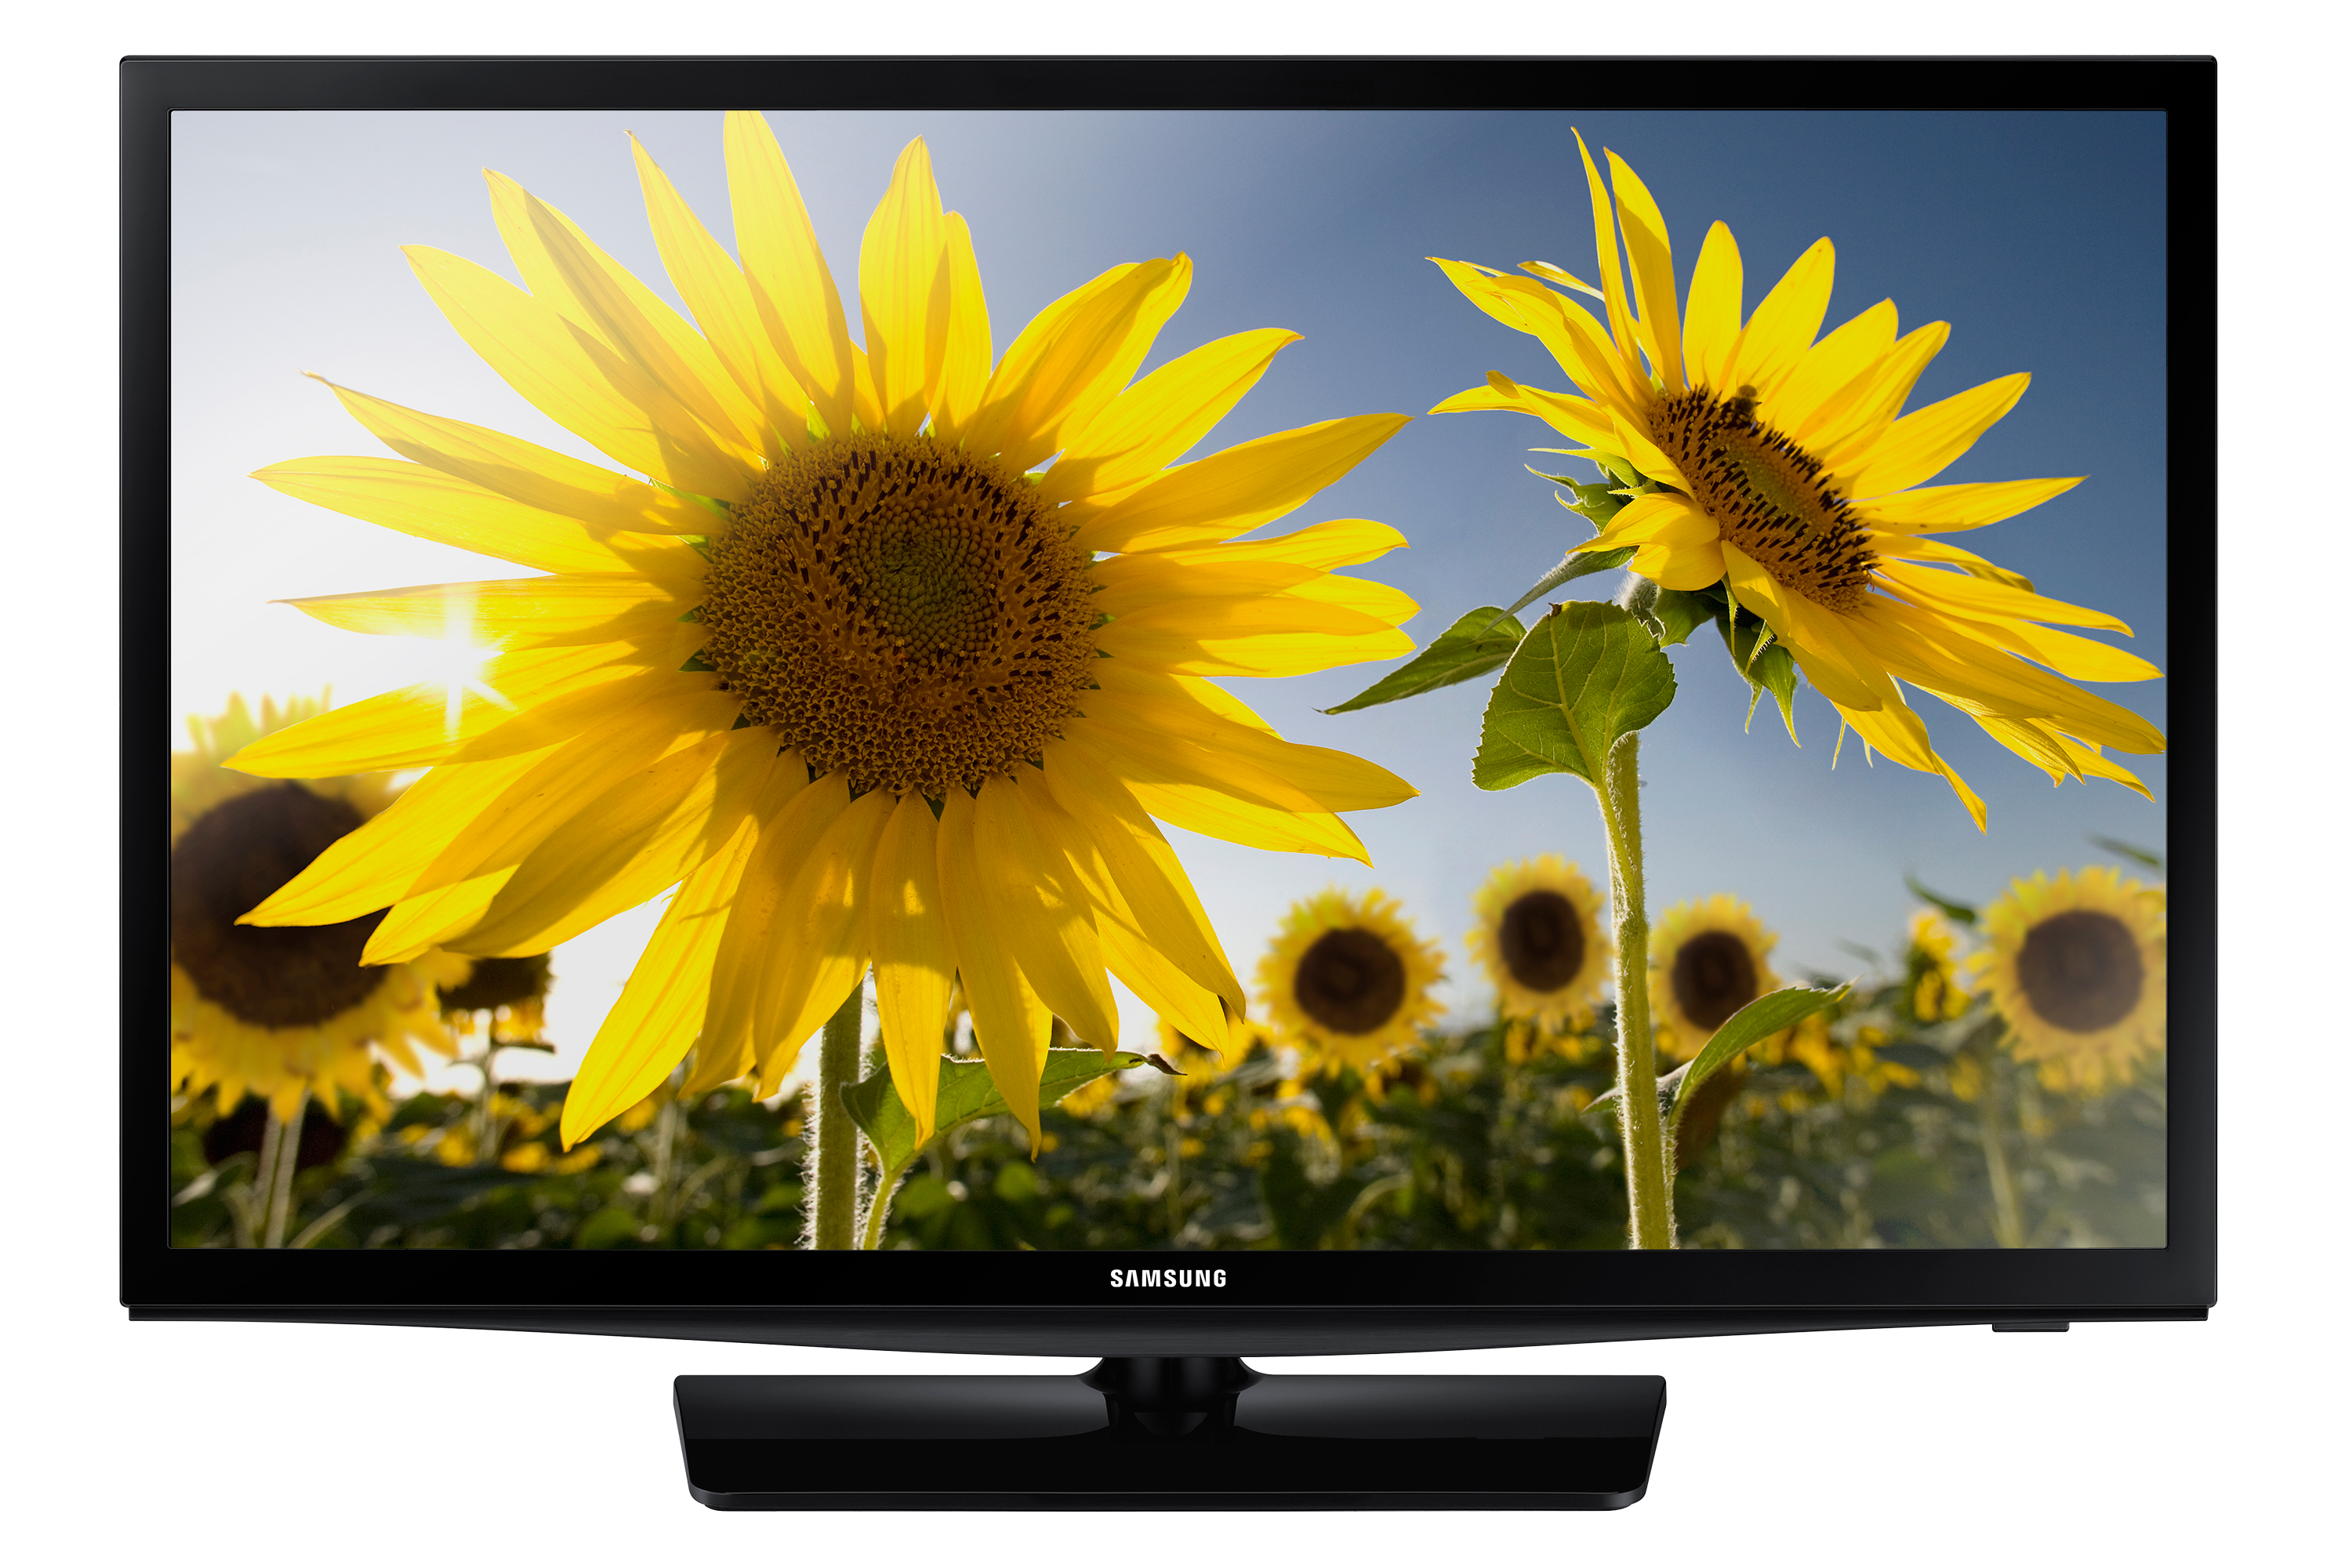 Samsung Led tv 32 Inches Series 4 Samsung 32-inch H4000 Series 4